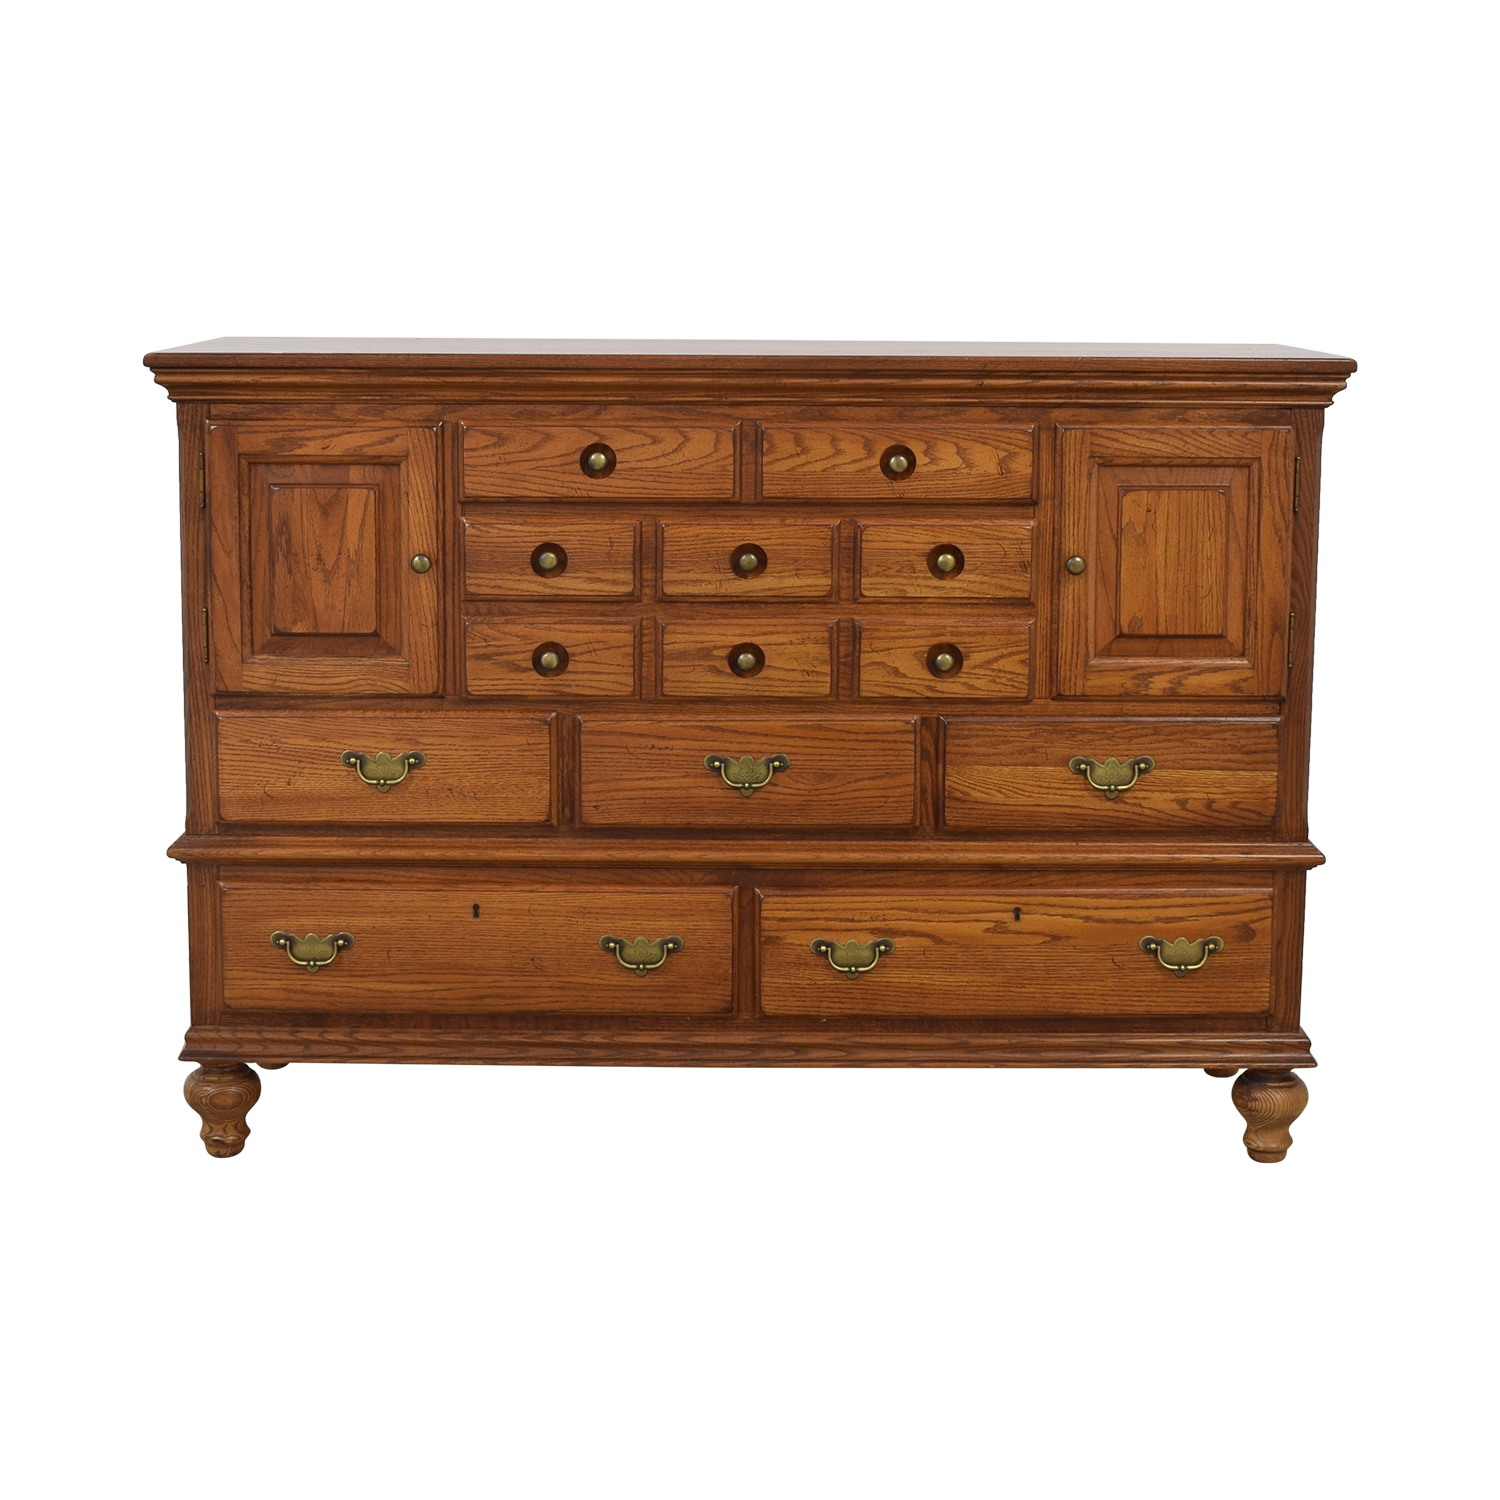 Kincaid Furniture Ducks Unlimited by Kincaid Currituck Cherry Dresser pa